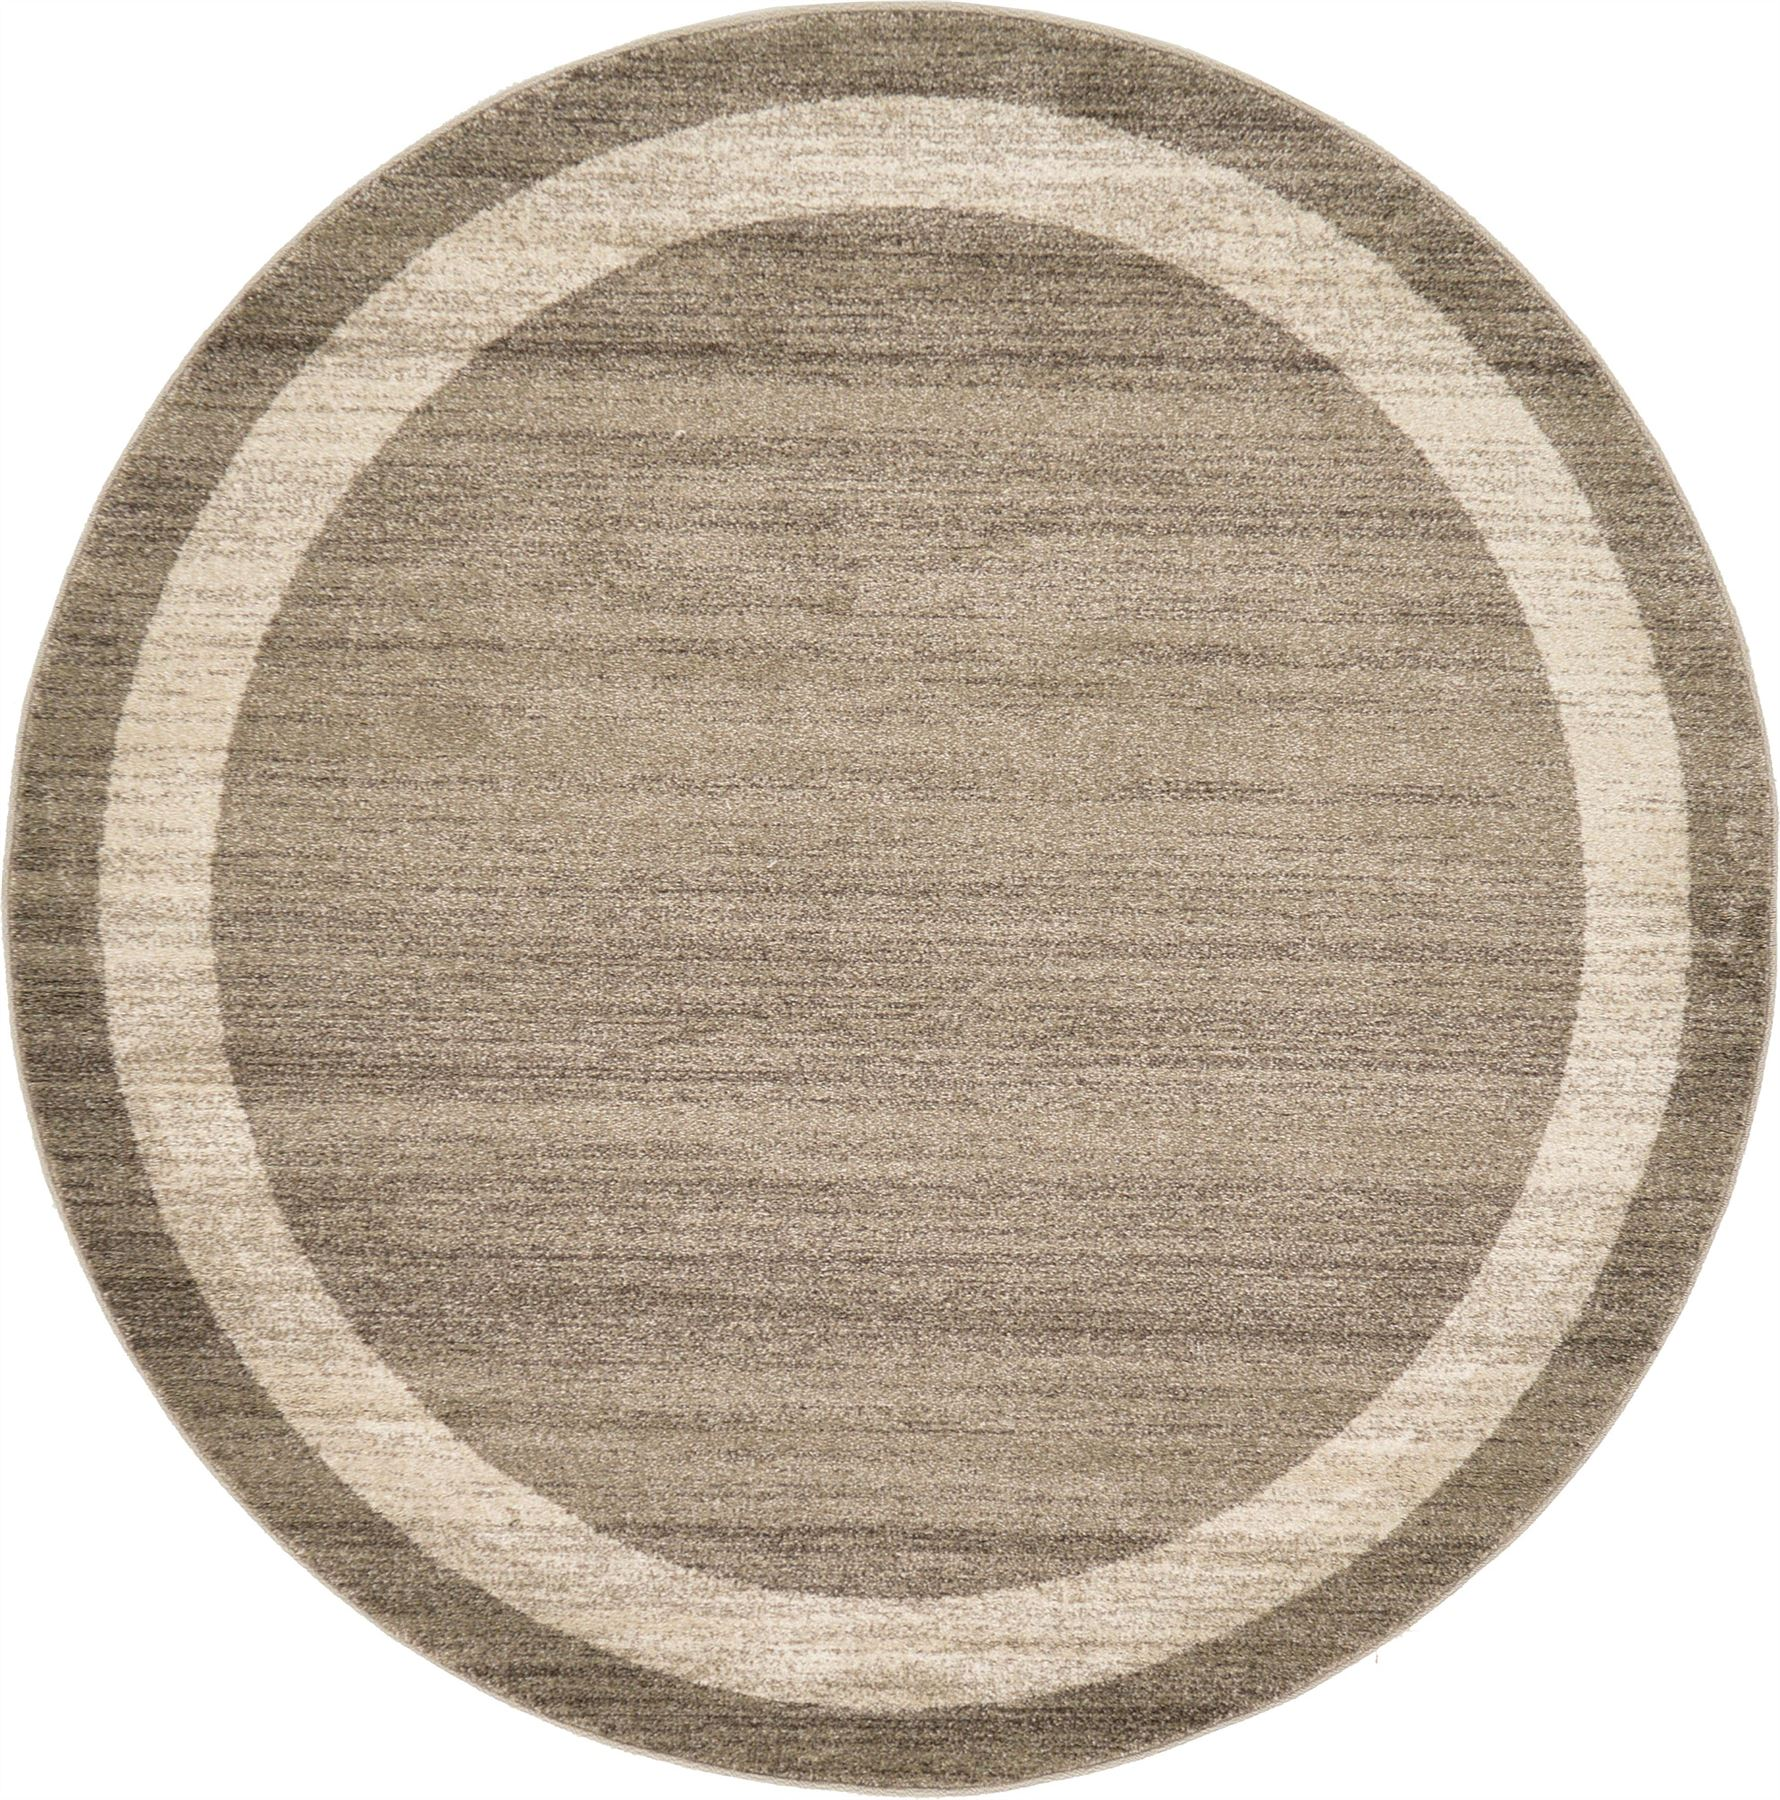 Modern large area rug soft contemporary greek style carpet for Round contemporary area rugs